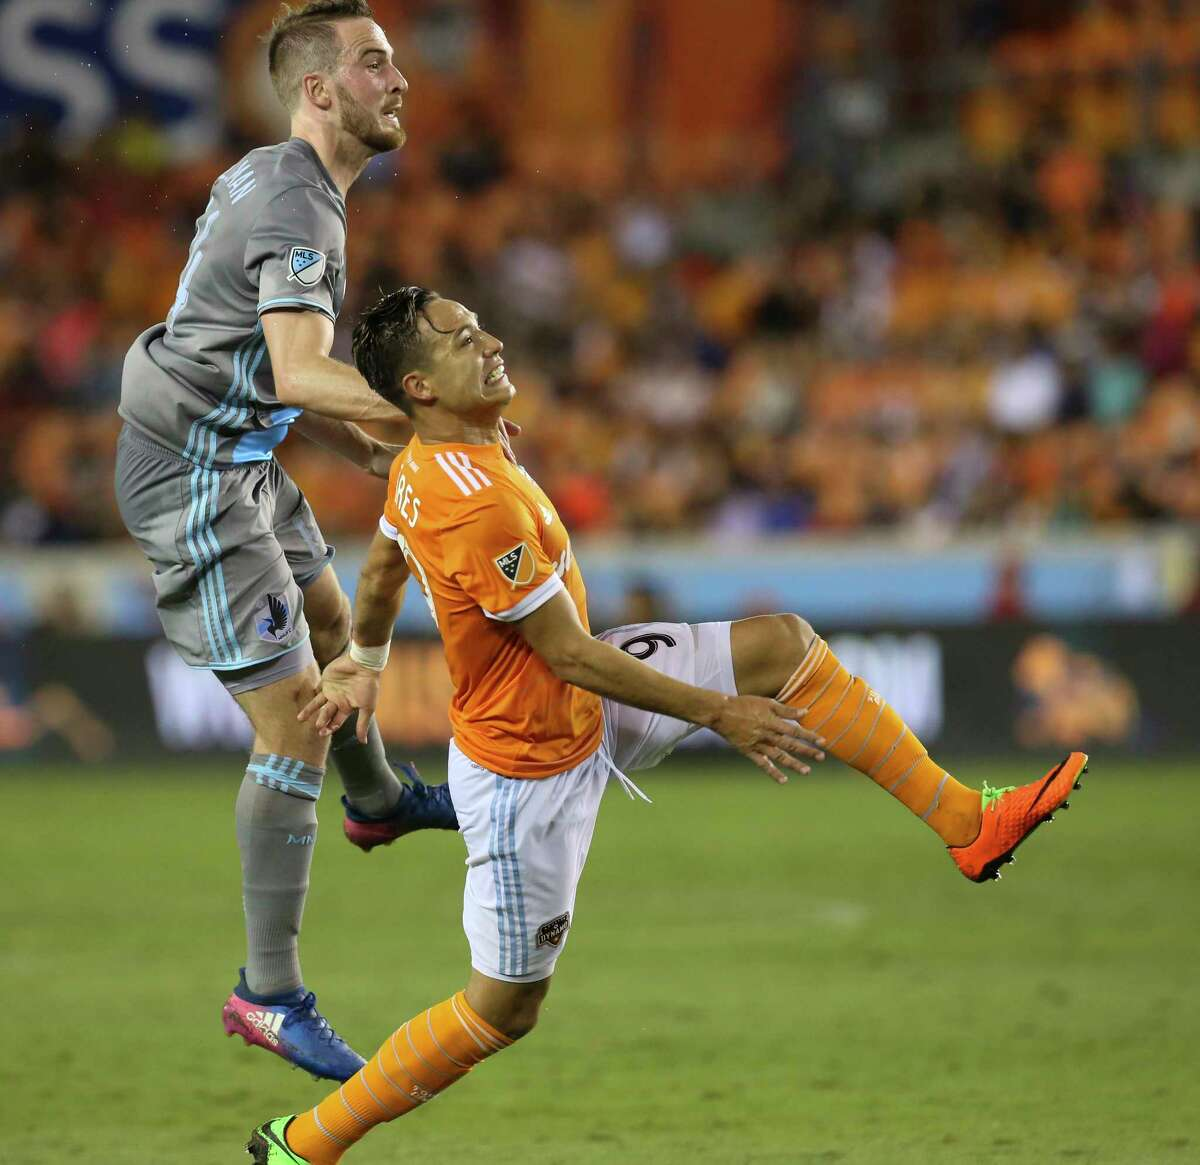 Houston Dynamo forward Erick Torres (9) and Minnesota United defender Brent Kallman (14) battle for a header during the second half of the game at BBVA Compass Stadium Saturday, April 15, 2017, in Houston.